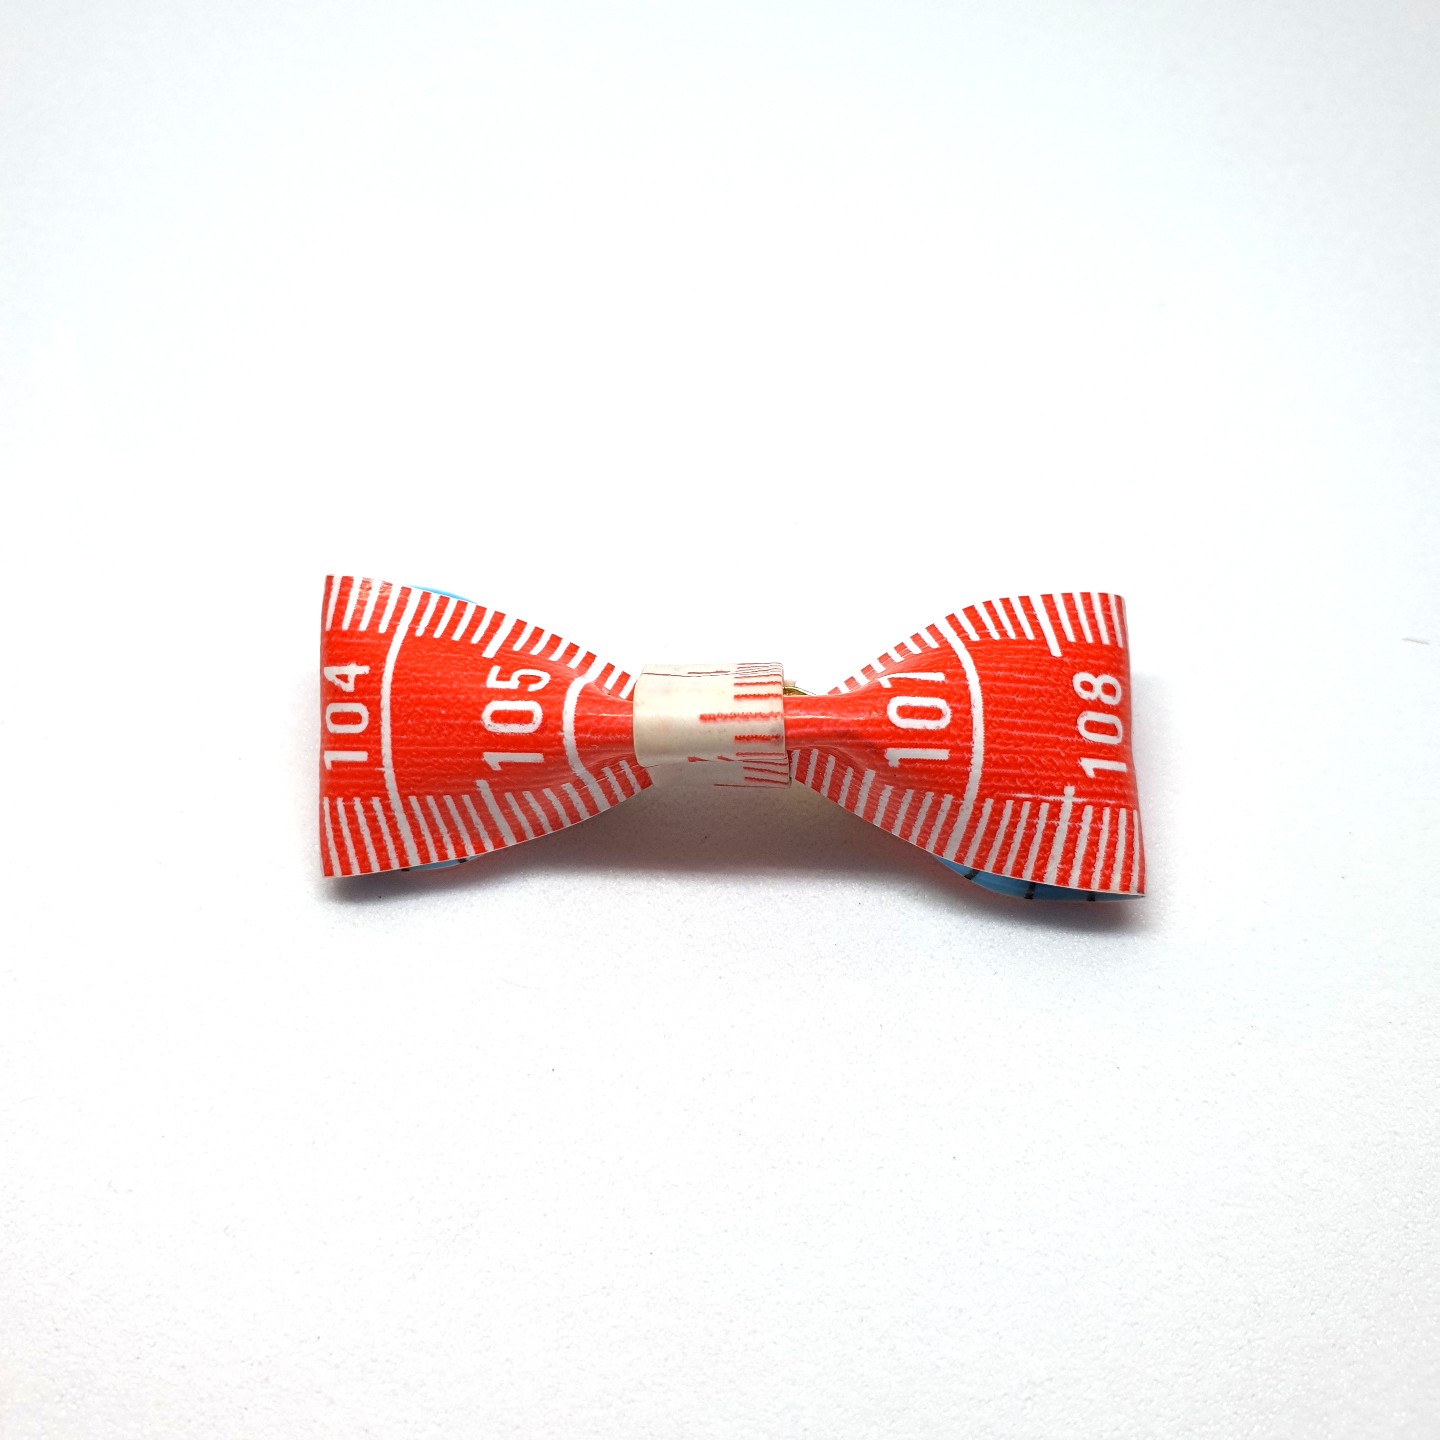 Handmade Accessories Measuring Tape Ribbon Brooches Orange 3 by Doe & Audrey